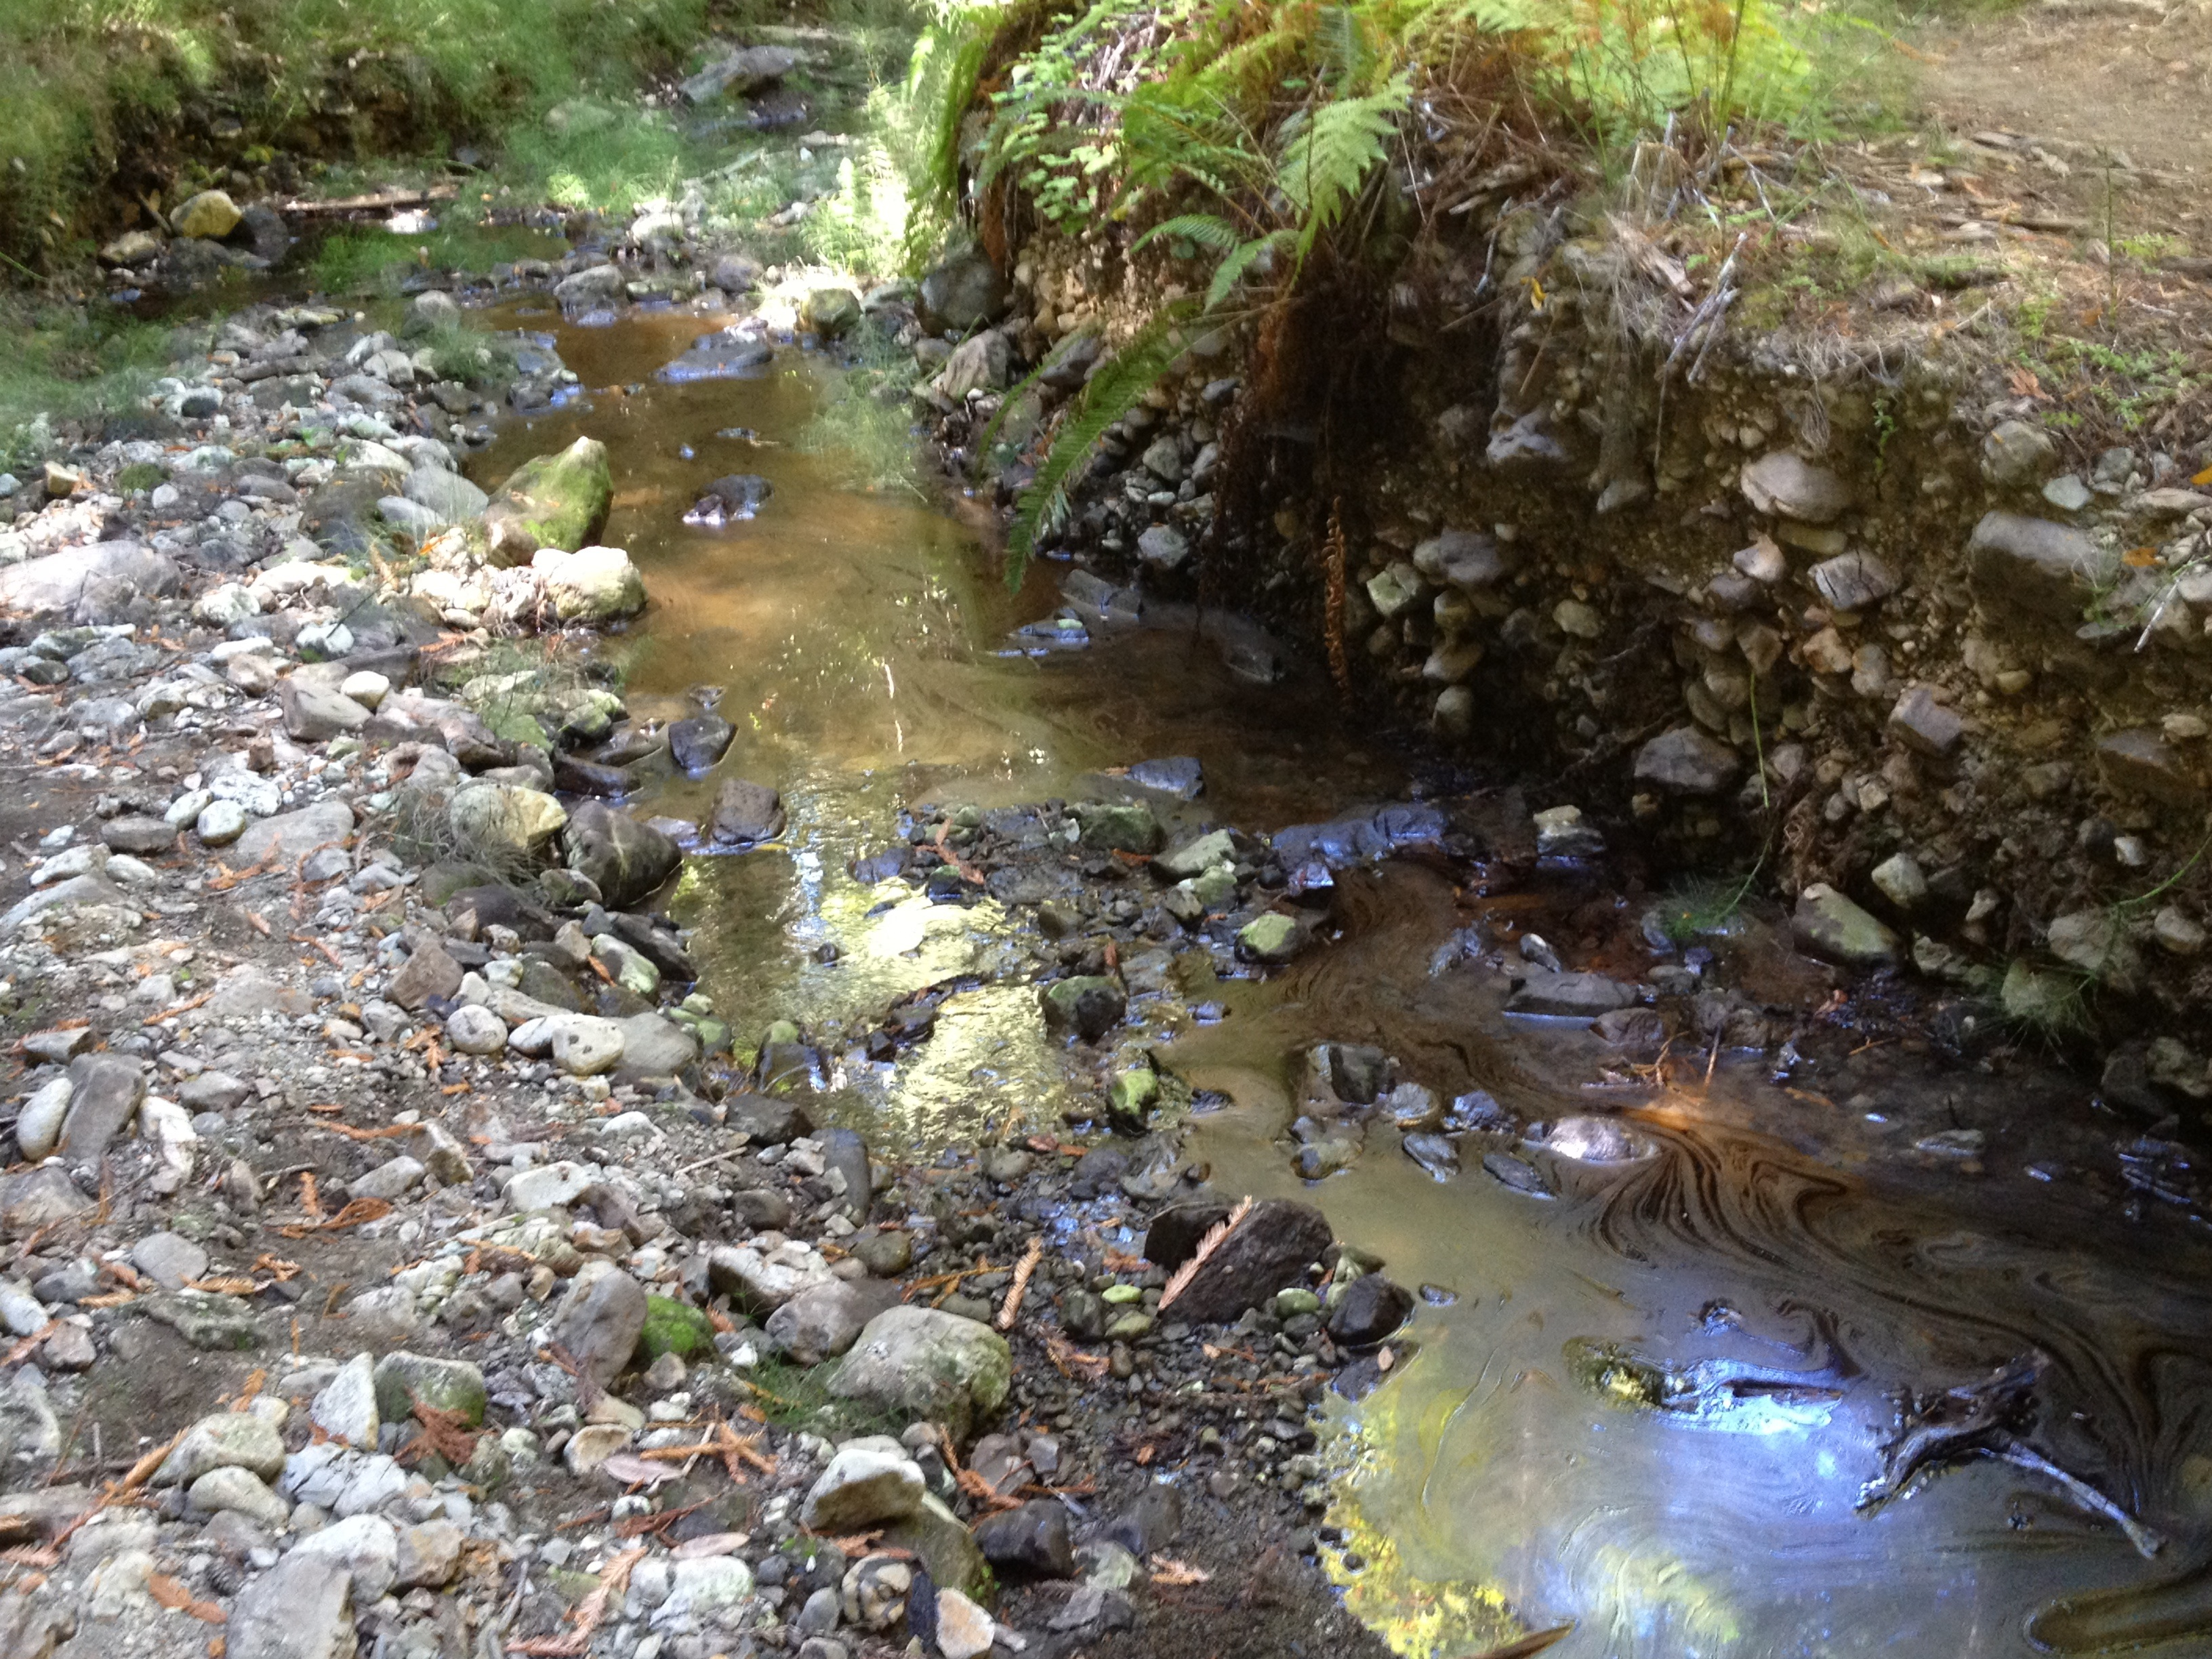 California san mateo county pescadero - Indeed There Is A Natural Oil Occurrence In The Appropriately Named Tarwater Creek In Pescadero Creek County Park Quotation From The Park S Website